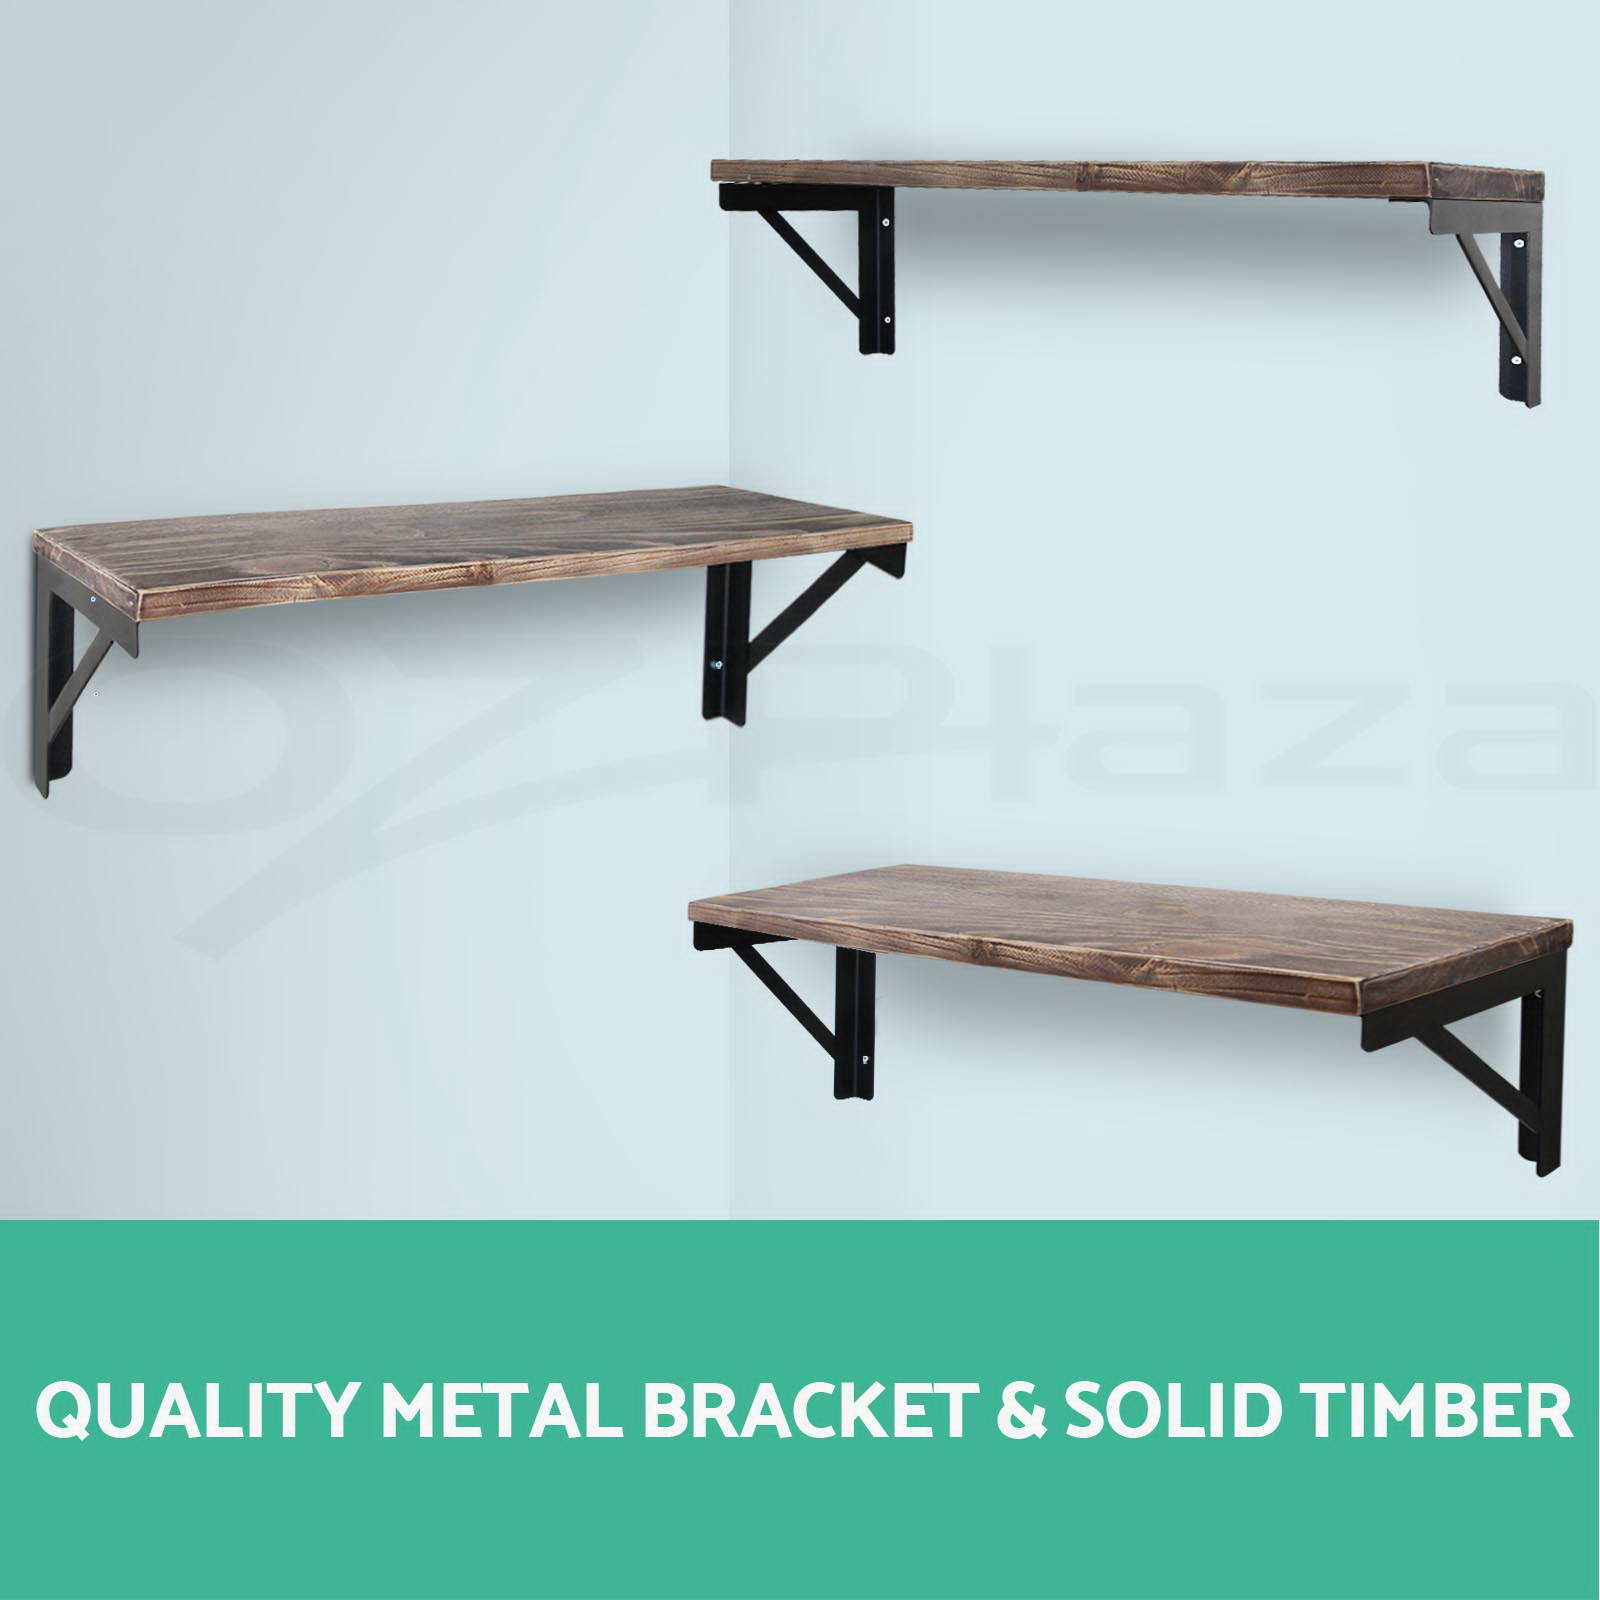 rustic industrial diy pipe shelf storage vintage wooden floating wall var brackets perth homemade crown molding small desk bookcase fireplace mantel dimensions door shoe rack cup